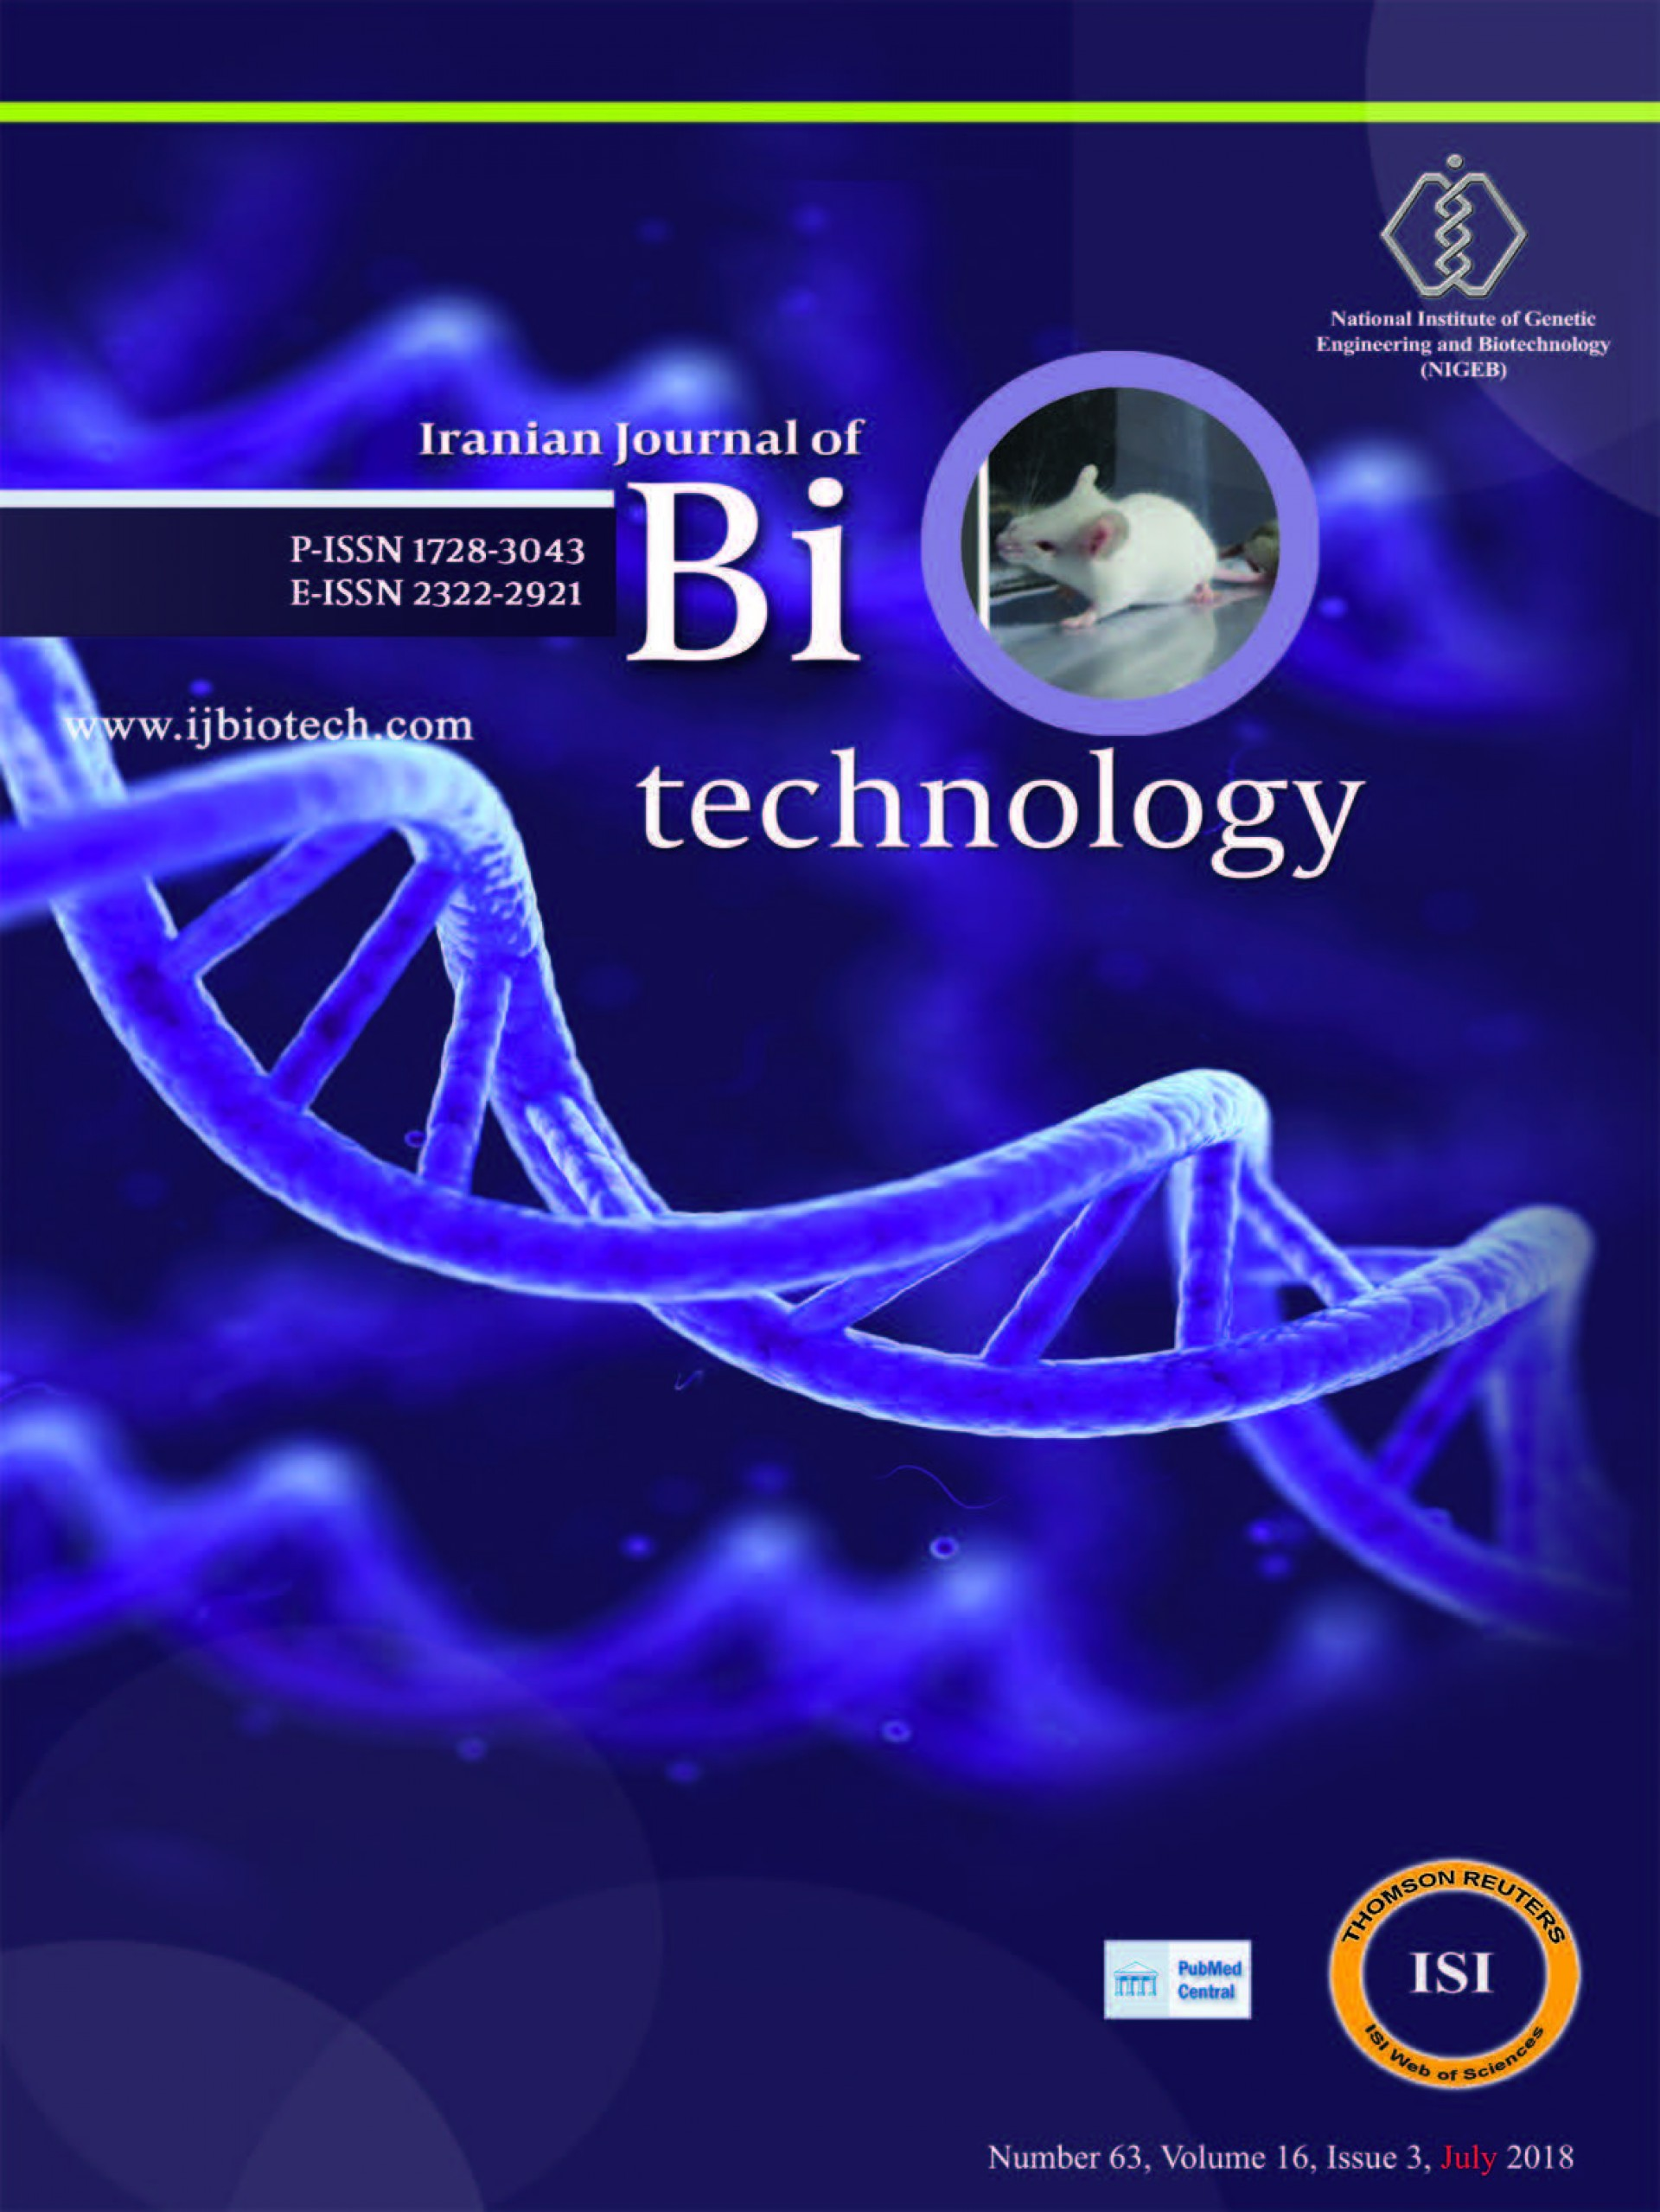 020 Biotechnology Researchs Pdf Free Download Cover En Impressive Research Papers 1920